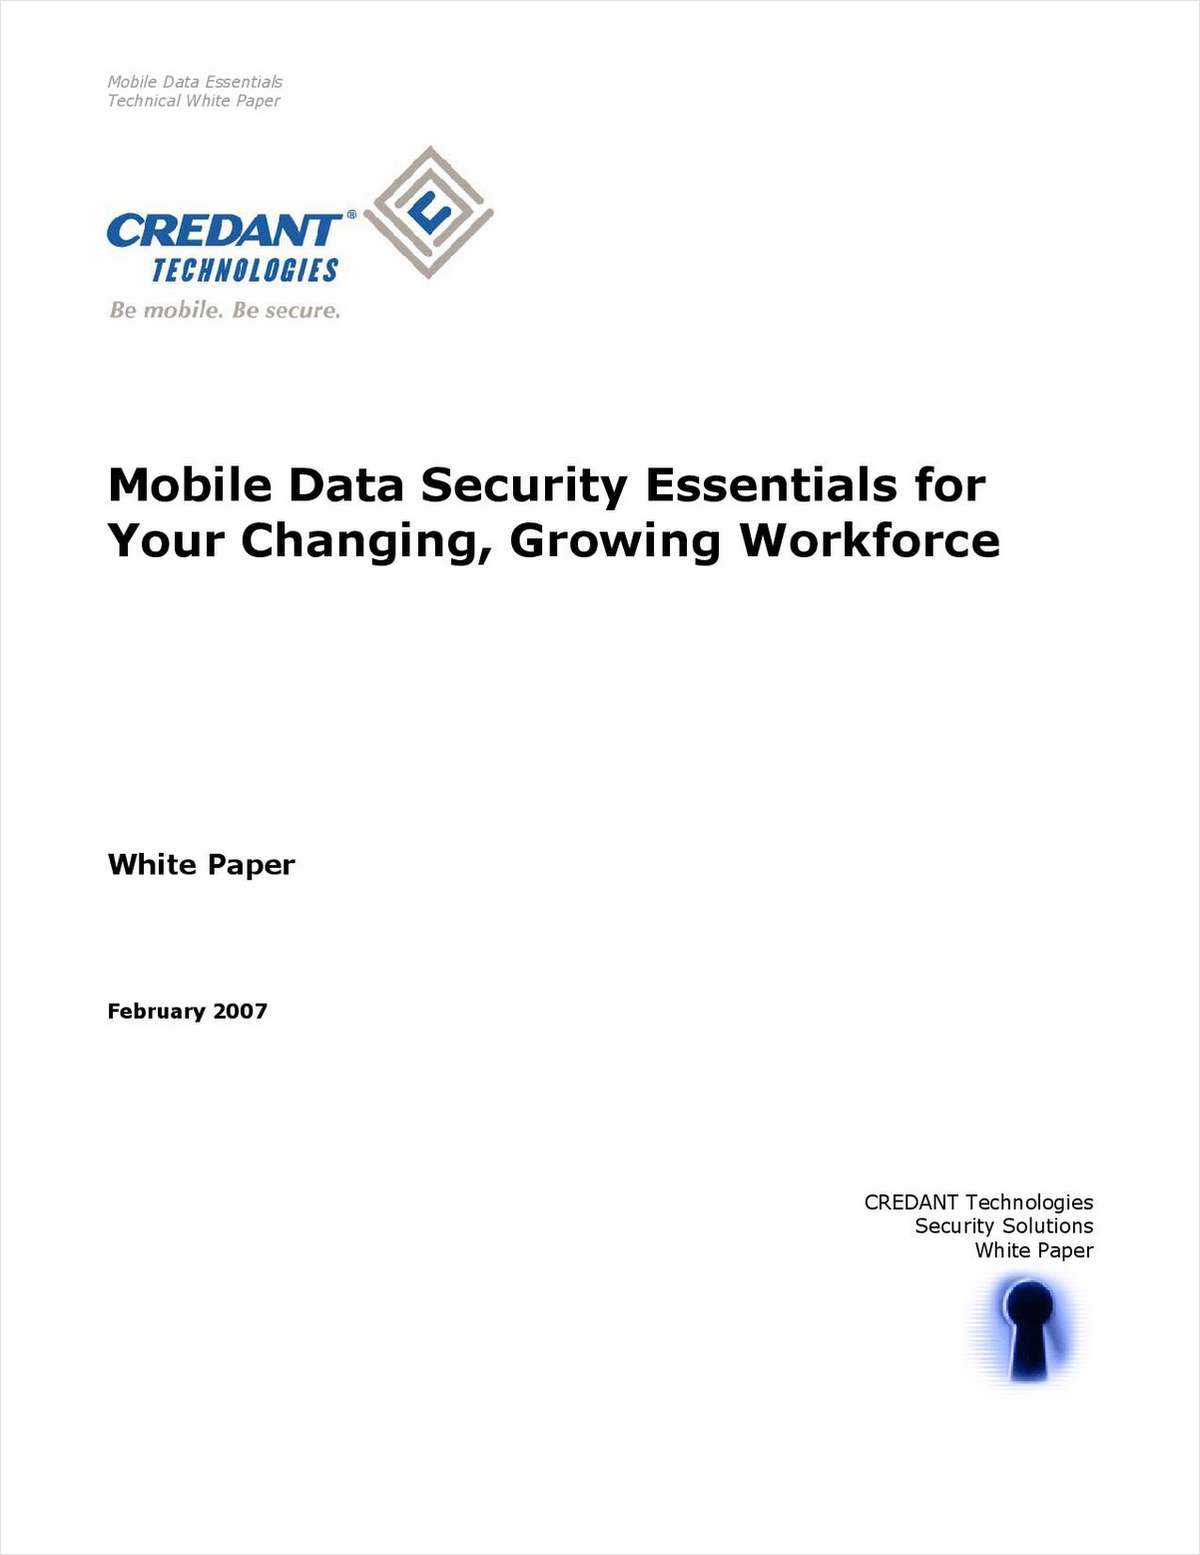 Mobile Data Security Essentials for Your Changing, Growing Workforce